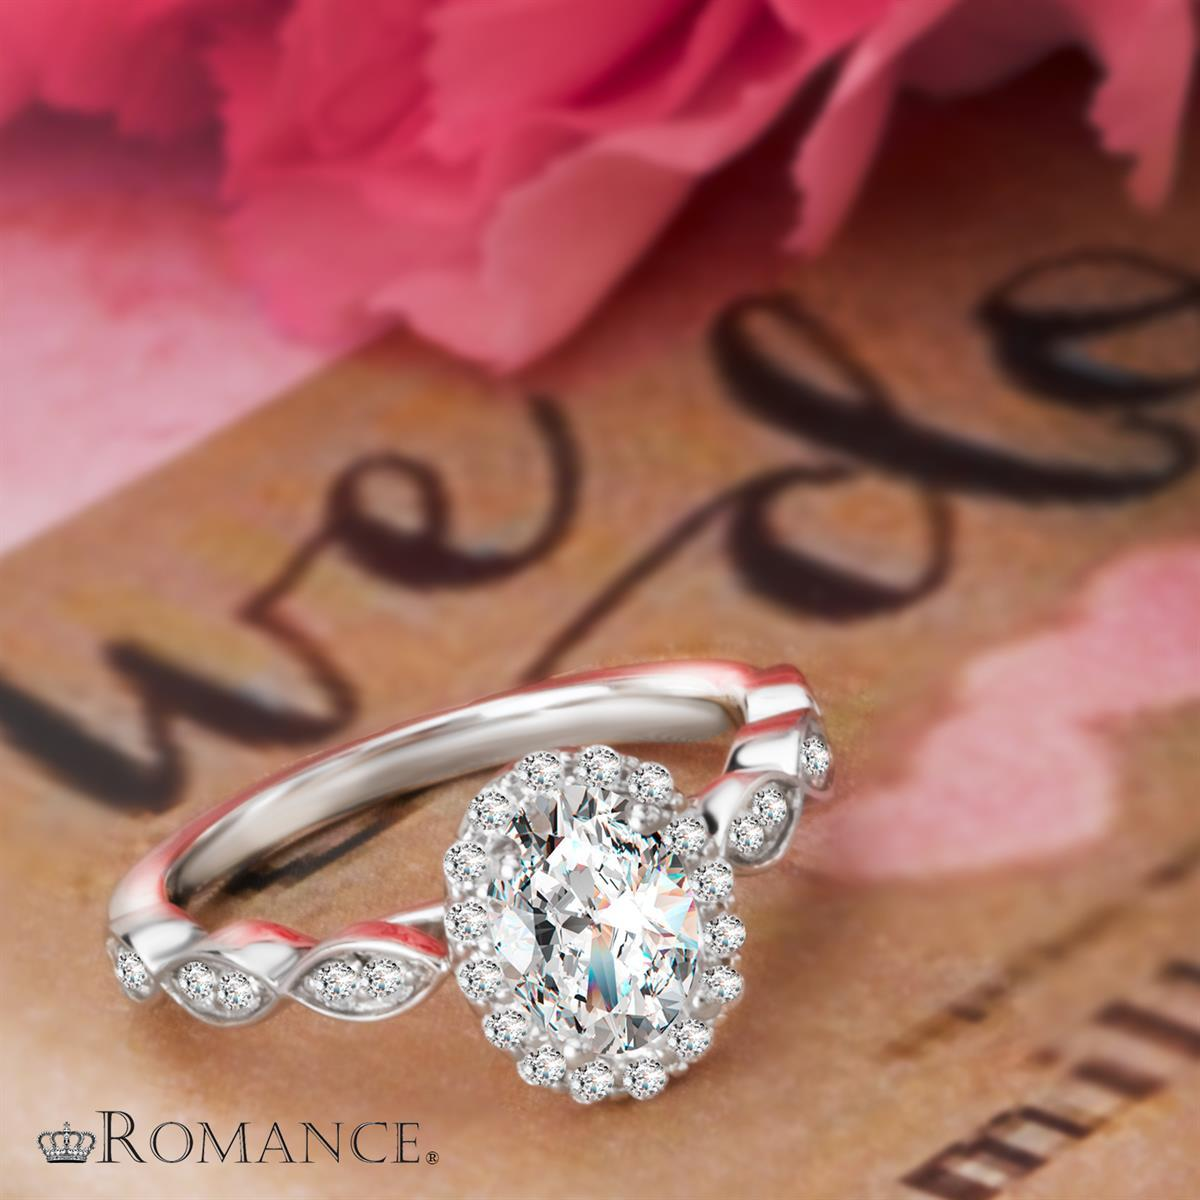 Engagement and Bridal Selections at K E Butler & Co Jewelers